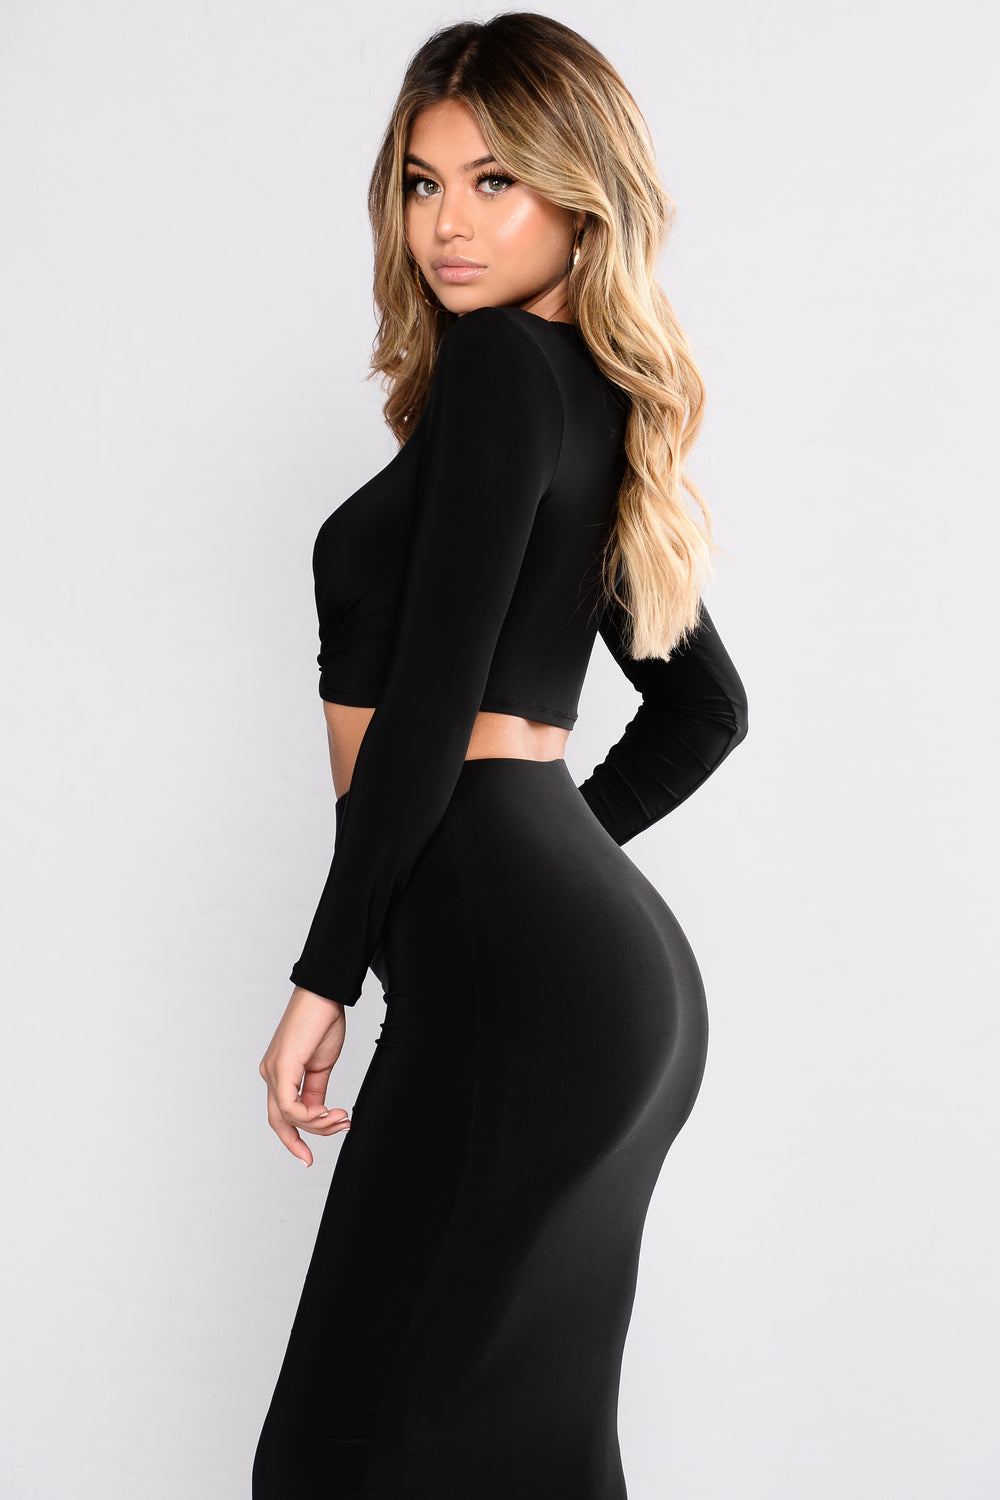 Love Lane Skirt Set - Black